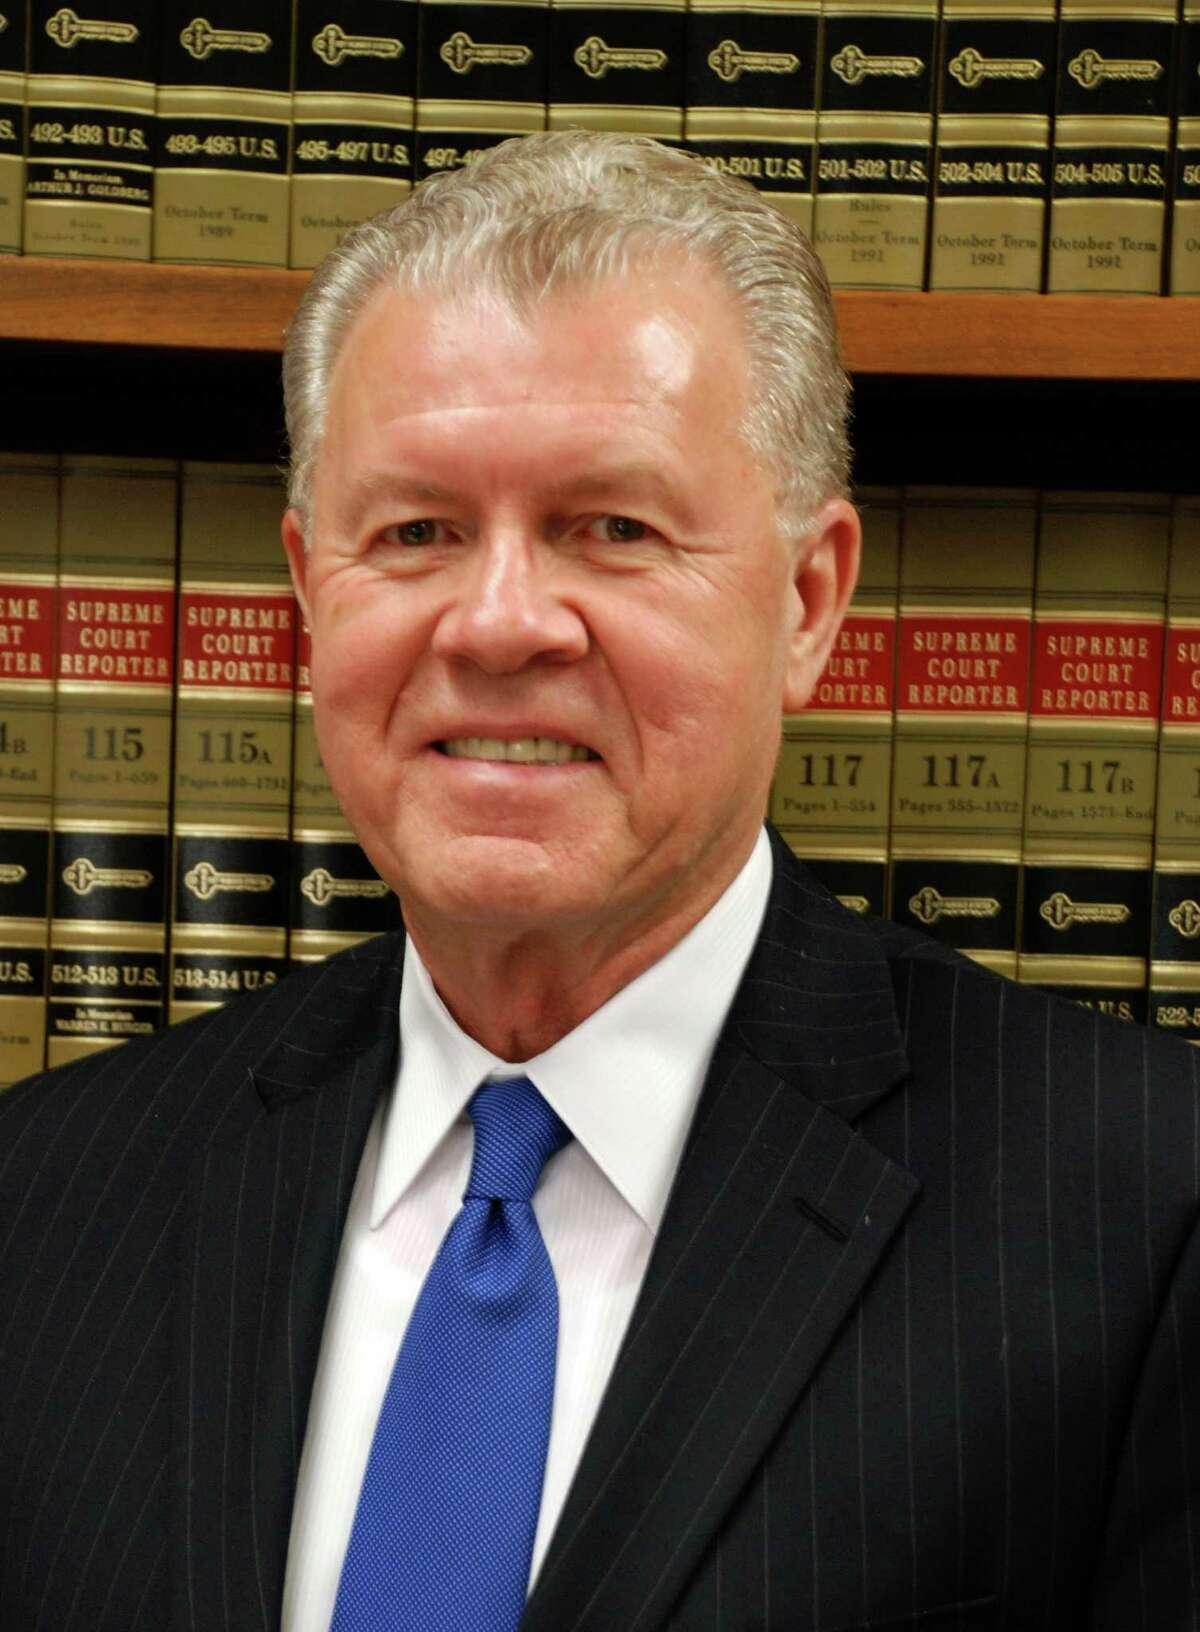 U.S. District Judge Carl Barbier of New Orleans poses in this undated handout photo released to the media on Thursday, Feb. 23, 2012. How much BP Plc will pay for the 2010 explosion of a Gulf of Mexico oil rig that killed 11 people and caused the largest offshore spill in U.S. history may rest in the hands of Barbier, a former maritime lawyer who began his career representing sailors in personal-injury cases. Source: Office of Judge Barbier via Bloomberg EDITOR'S NOTE. NO SALES. EDITORIAL USE ONLY.